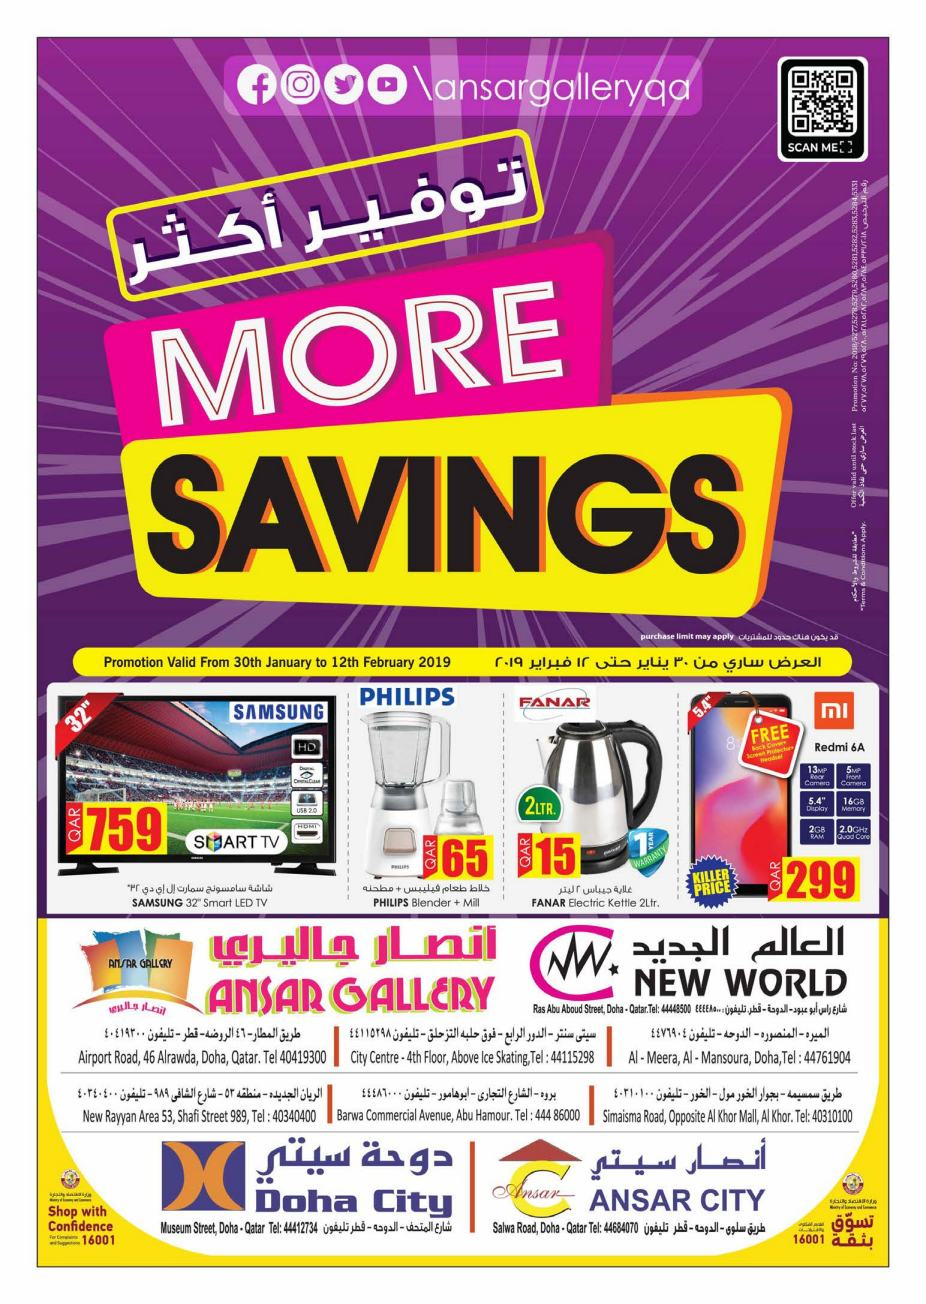 Ansar Gallery More Savings till 12/02